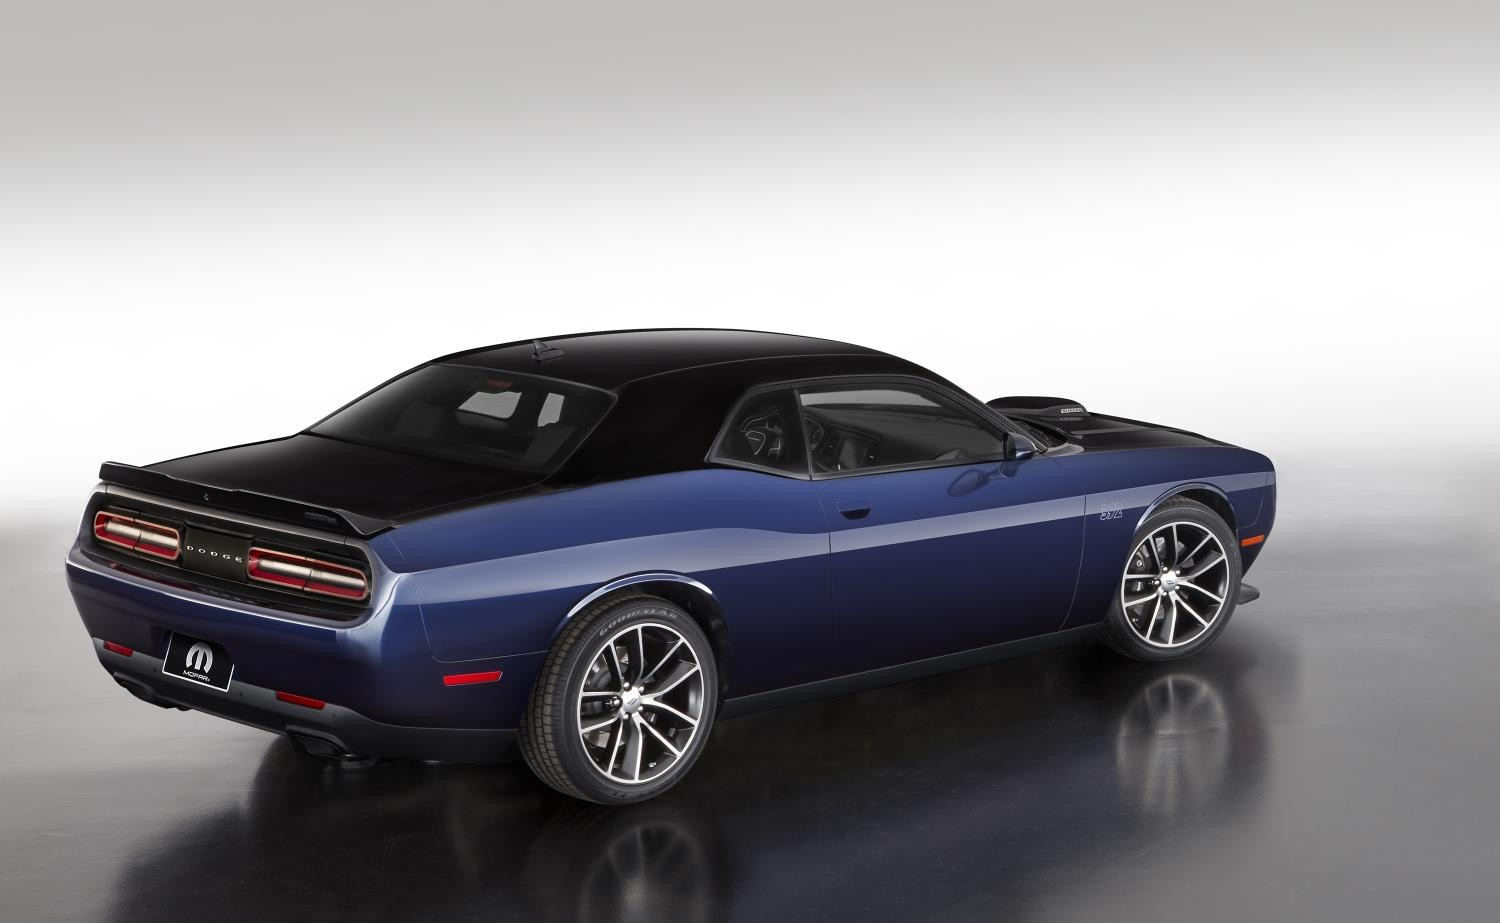 Official Mopar 17 Dodge Challenger HD Wallpapers Download free images and photos [musssic.tk]